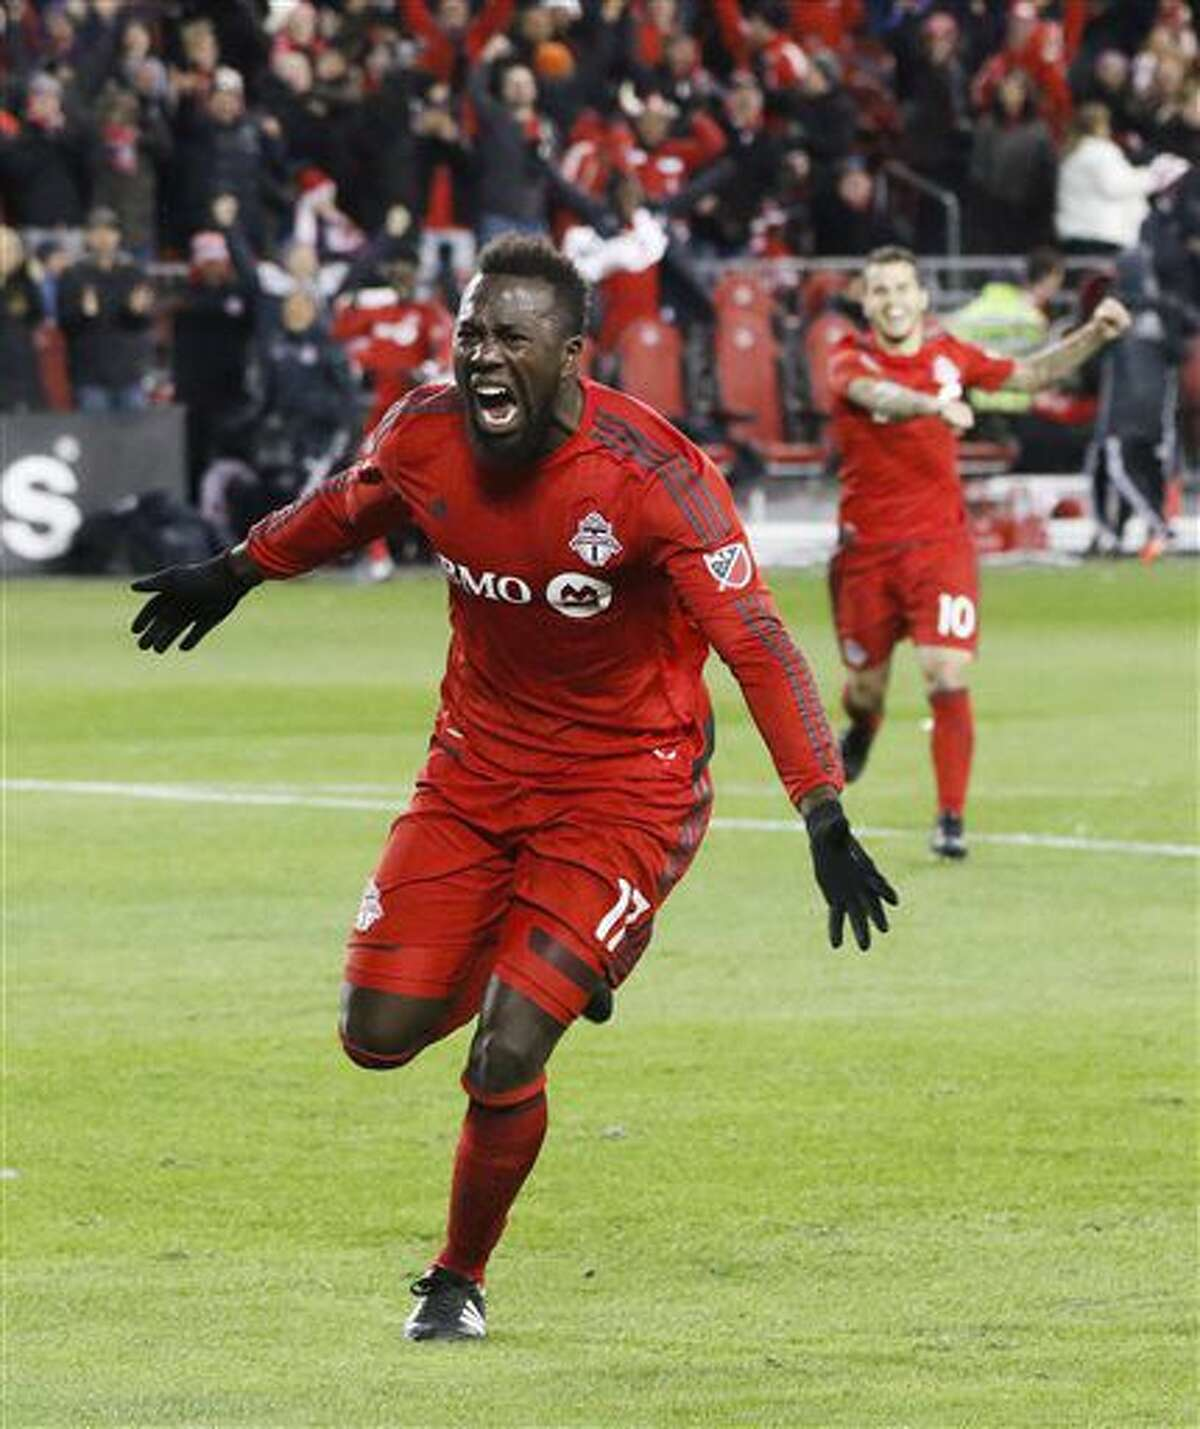 Toronto FC's Jozy Altidore celebrates his goal in front of Sebastian Giovinco, right, against the Philadelphia Union during the second half of an MLS soccer playoff match in Toronto, Wednesday, Oct. 26, 2016. (Mark Blinch/The Canadian Press via AP)